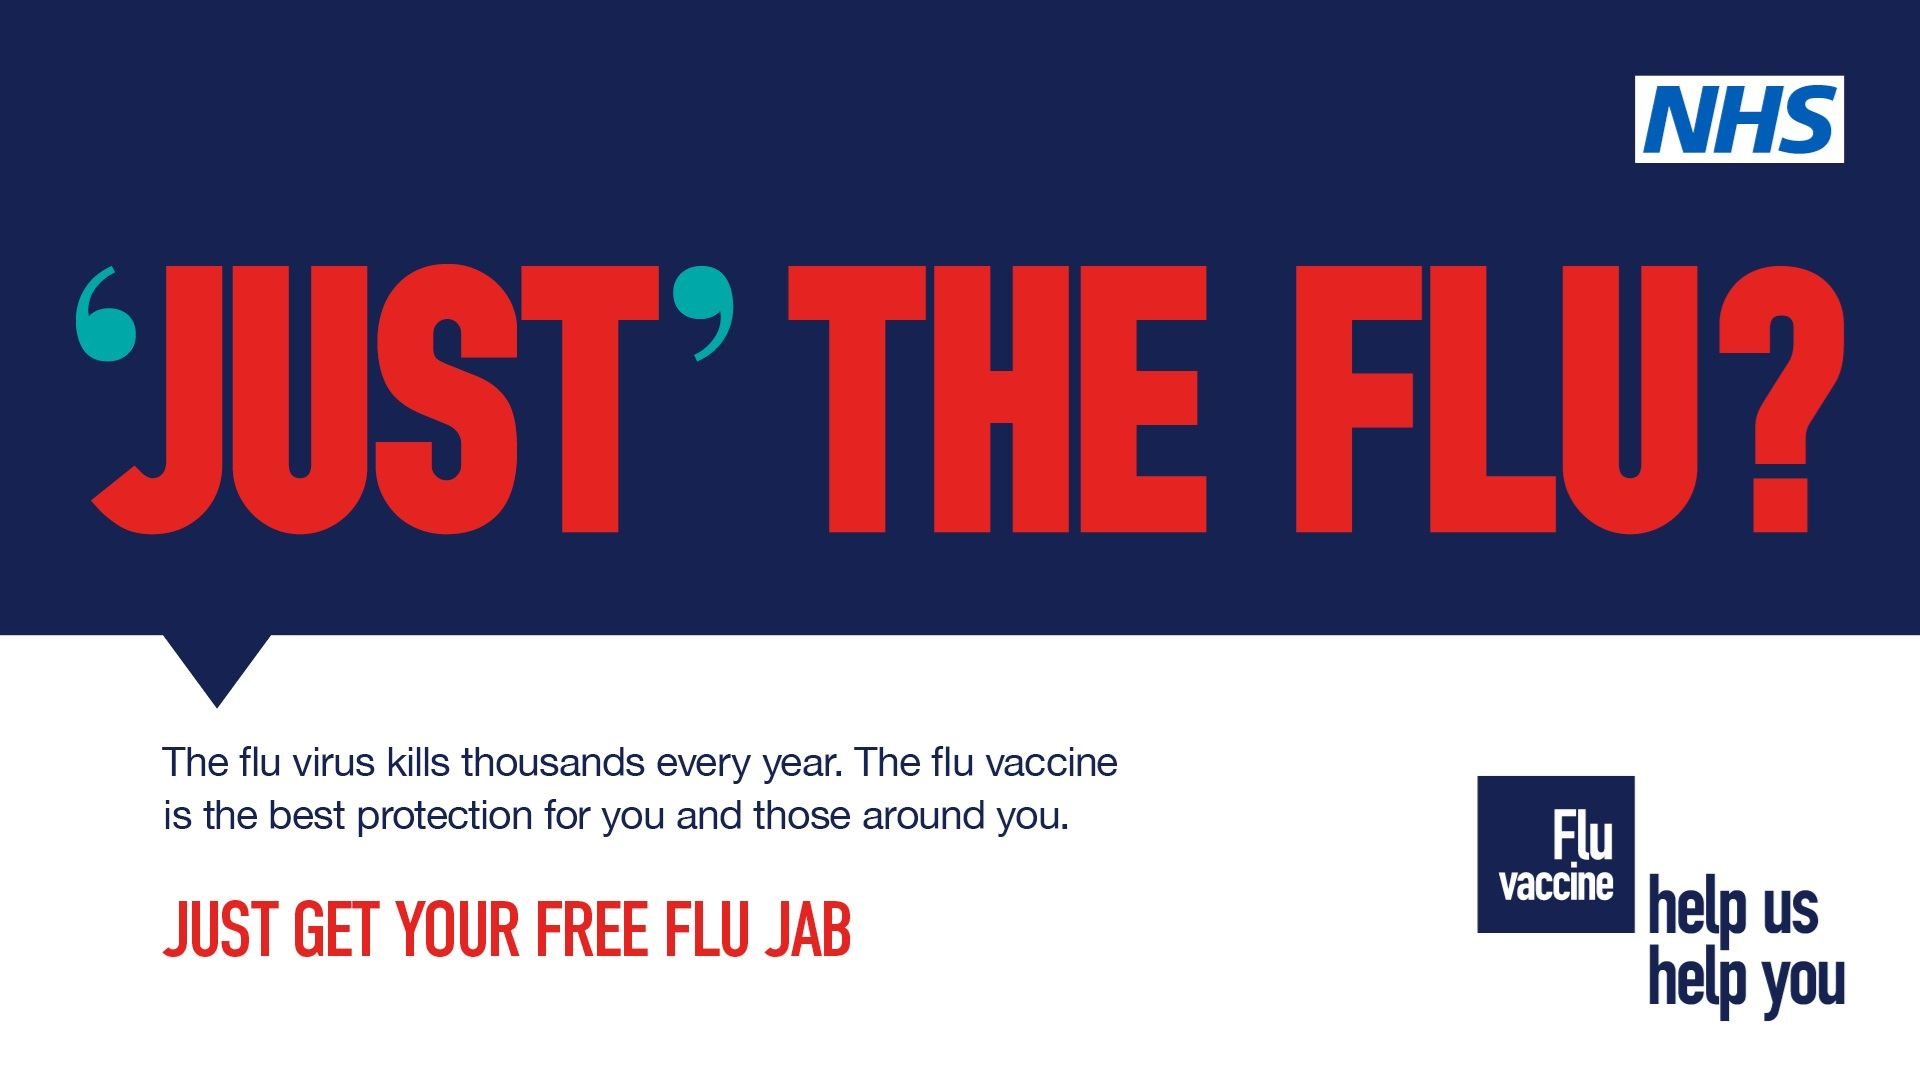 'just'the flu - get your free flu jab